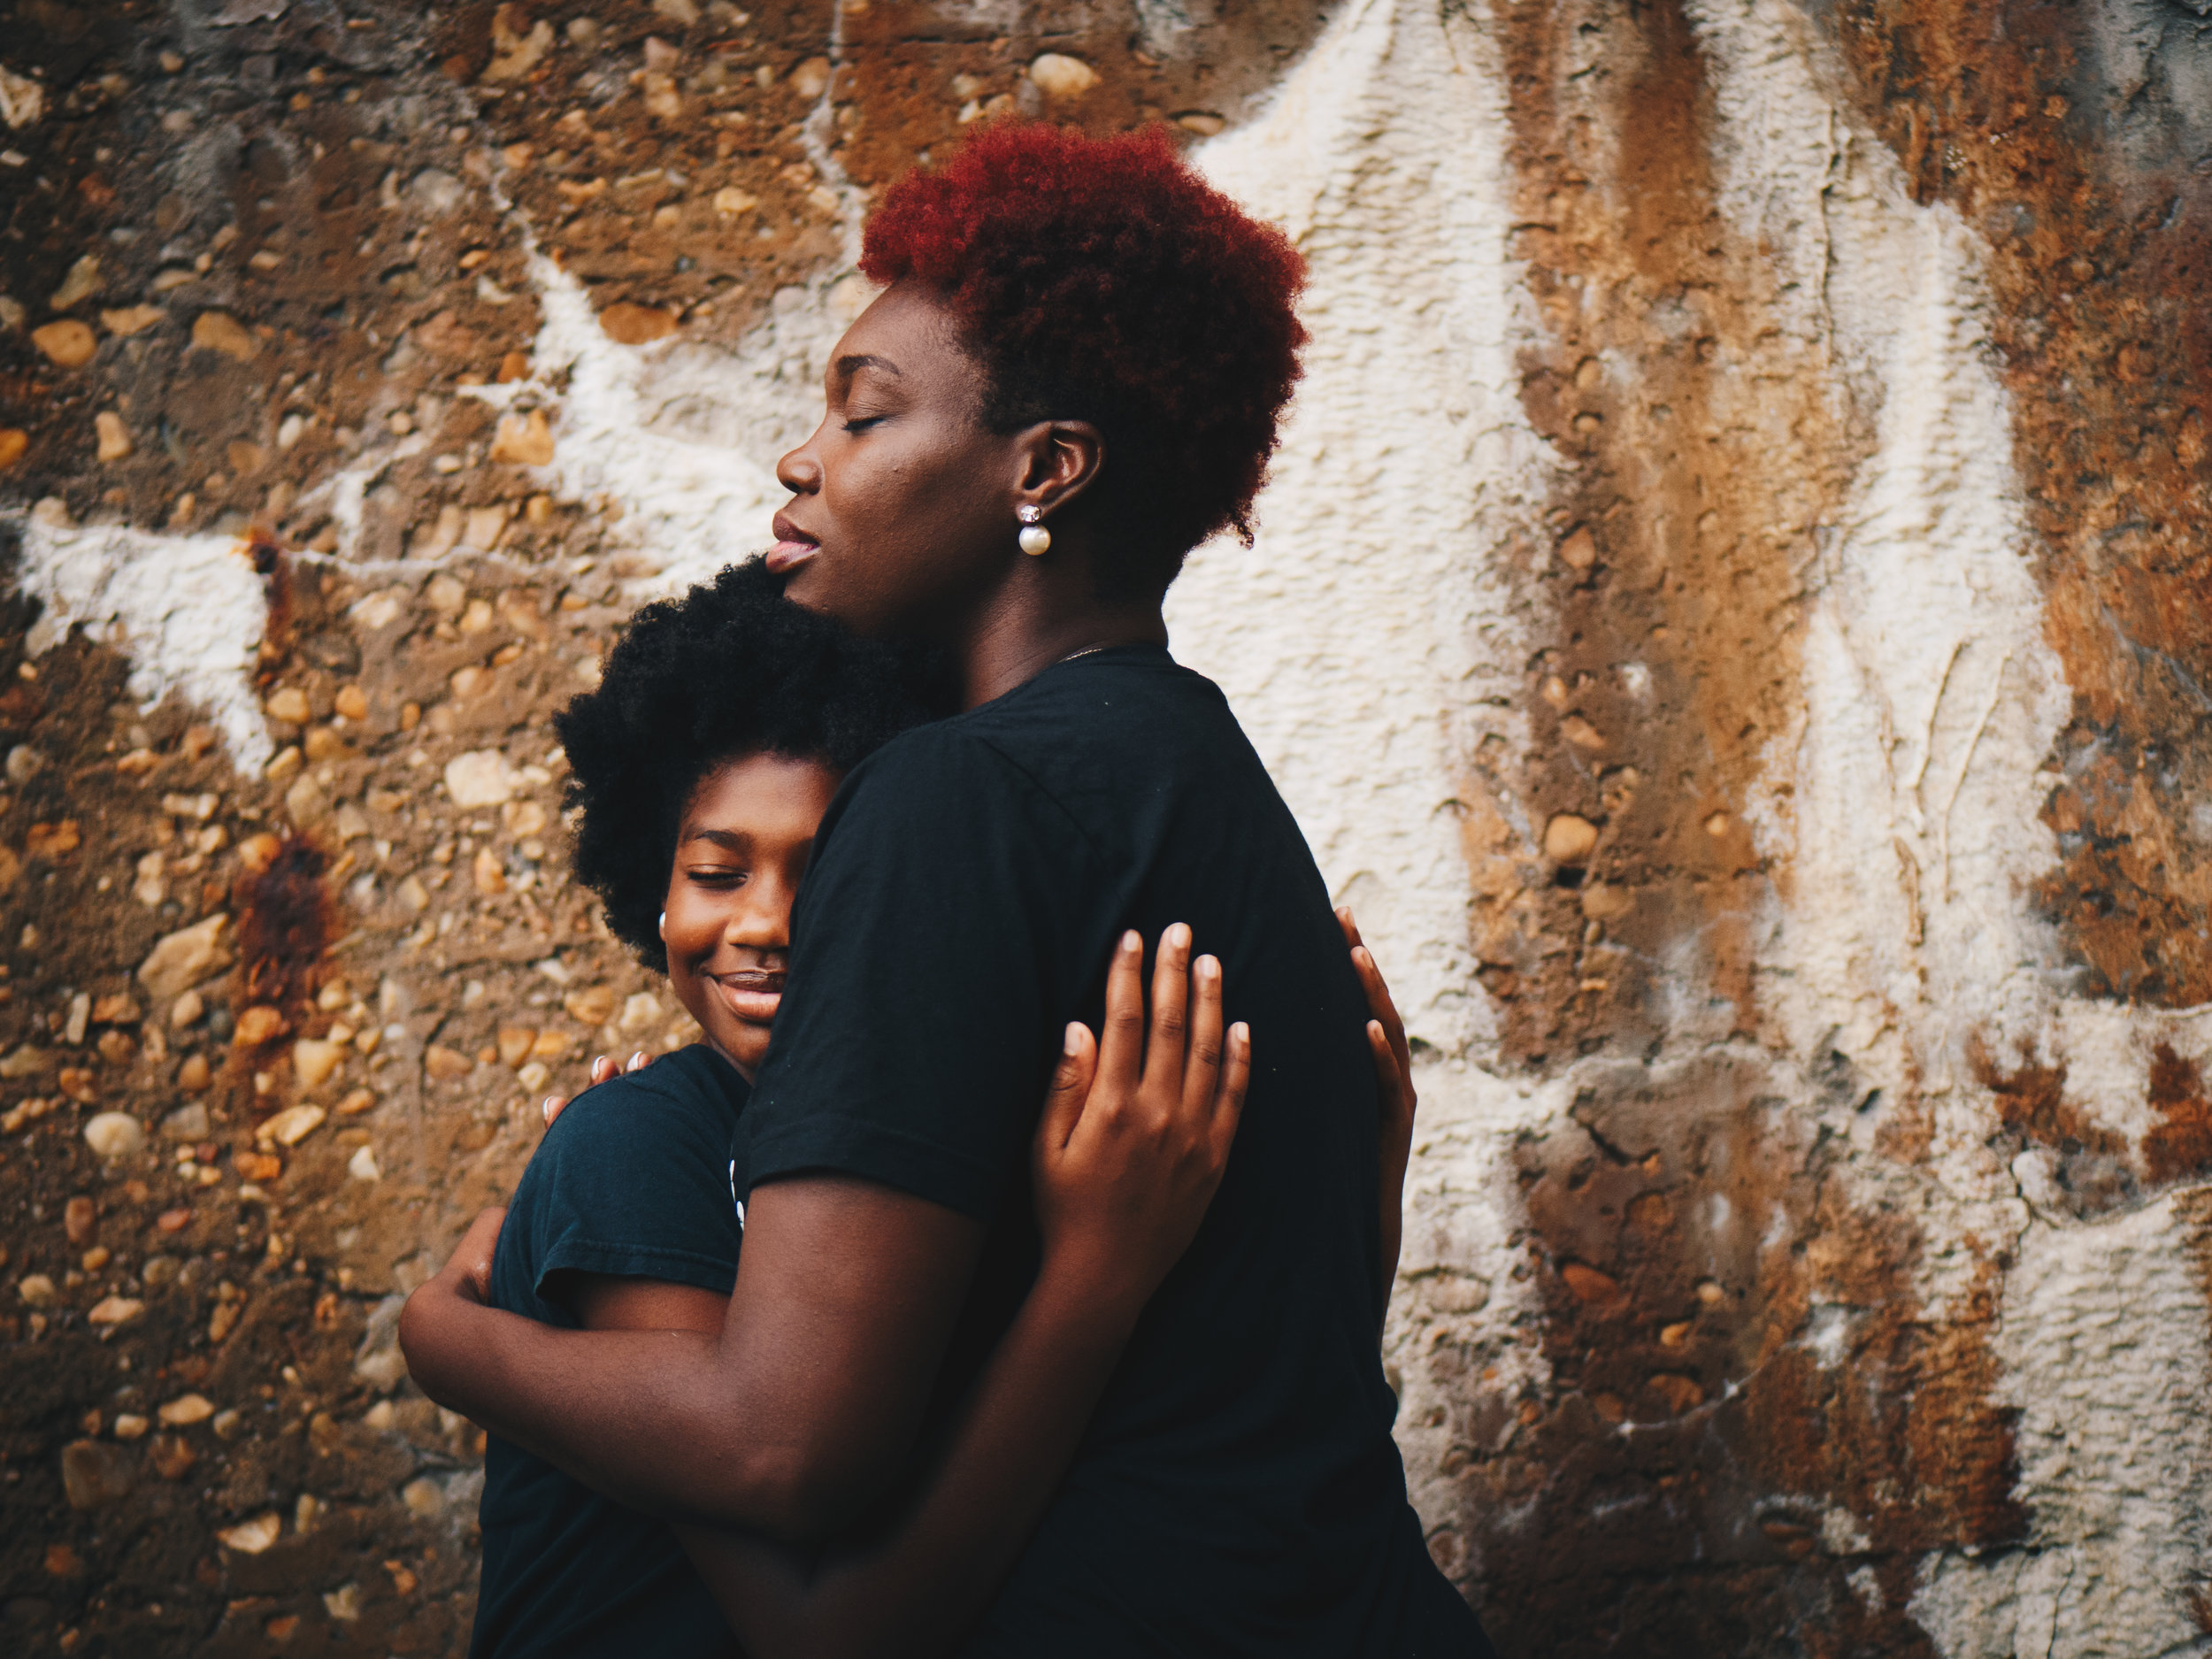 2.7 million children have at least one incarcerated parent, but predatory prison phone call rates deprive many of them from maintaining regular contact. -